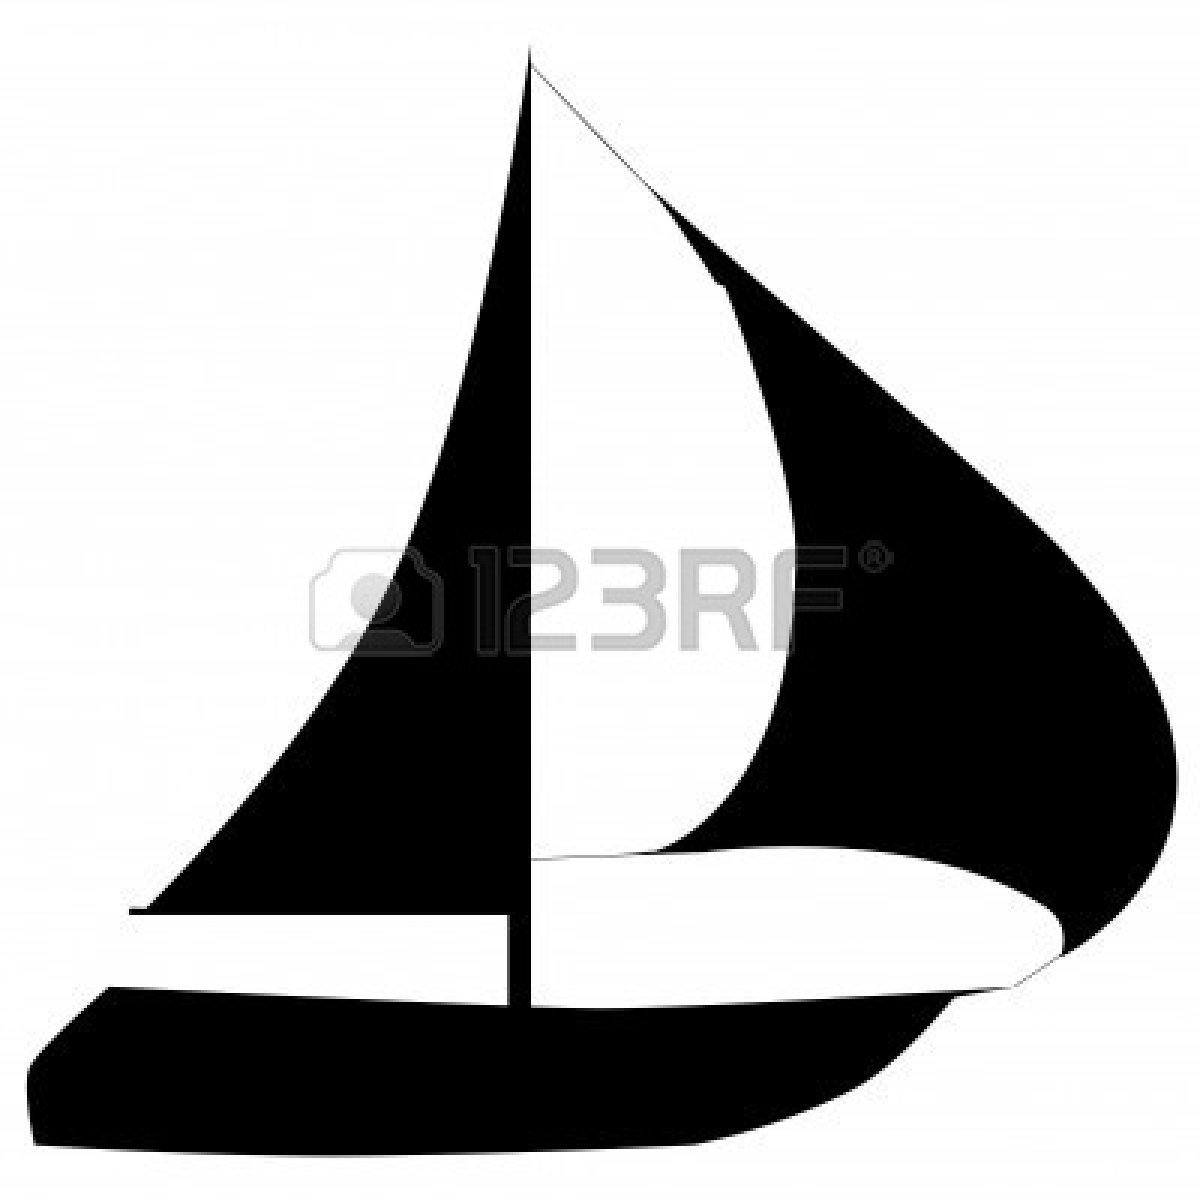 sailboat-clipart-silhouette-7912600-boat-yacht.jpg